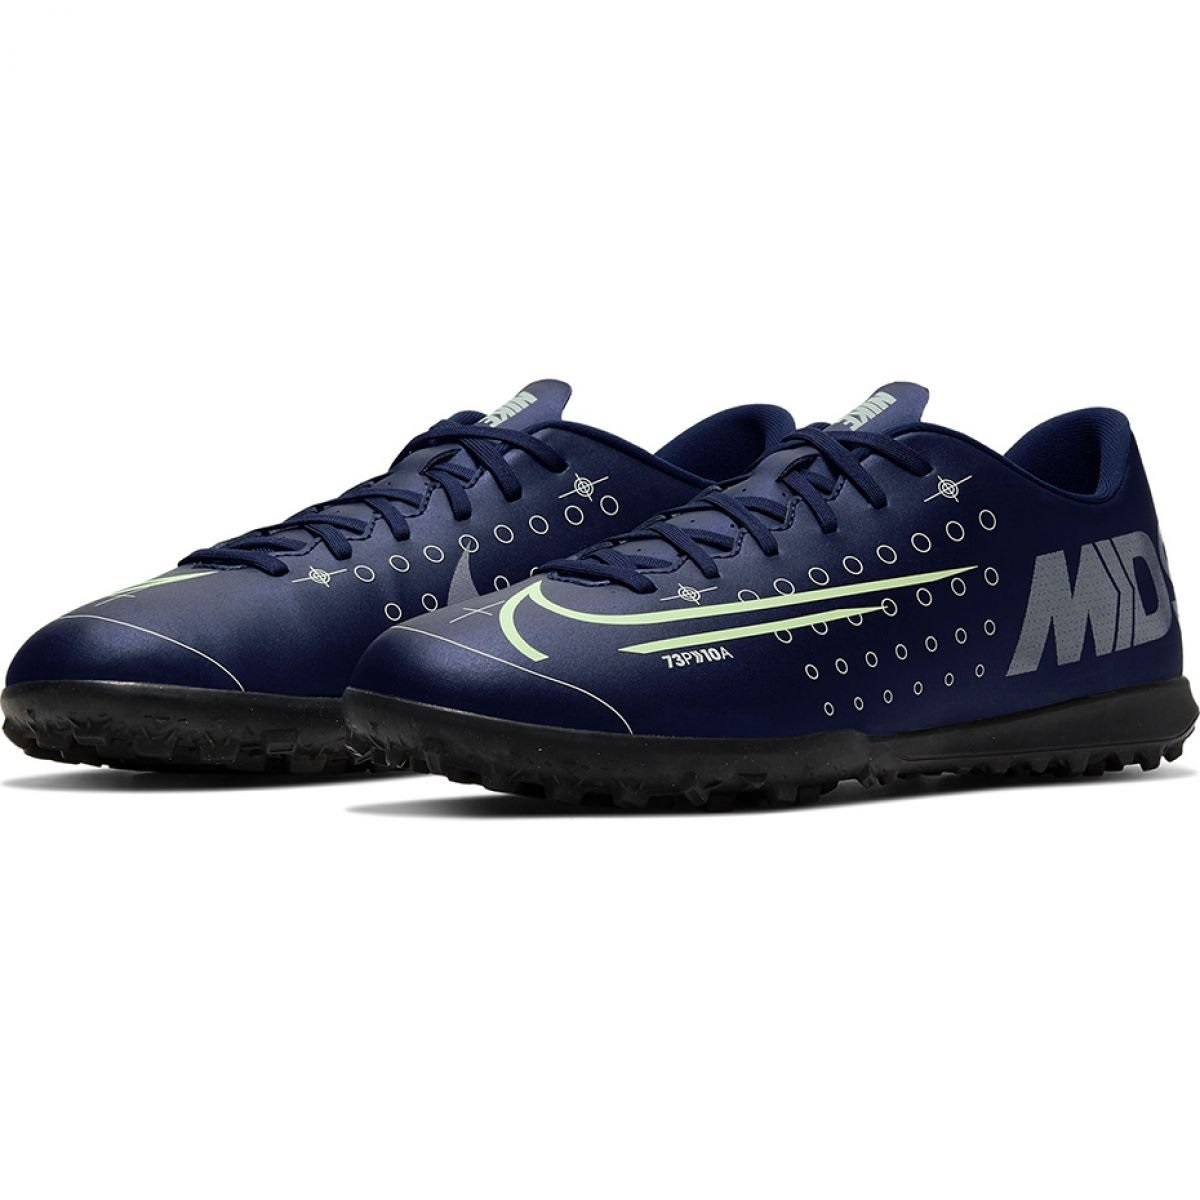 NIKE VAPOR 13 CLUB MDS TF CJ1305-401